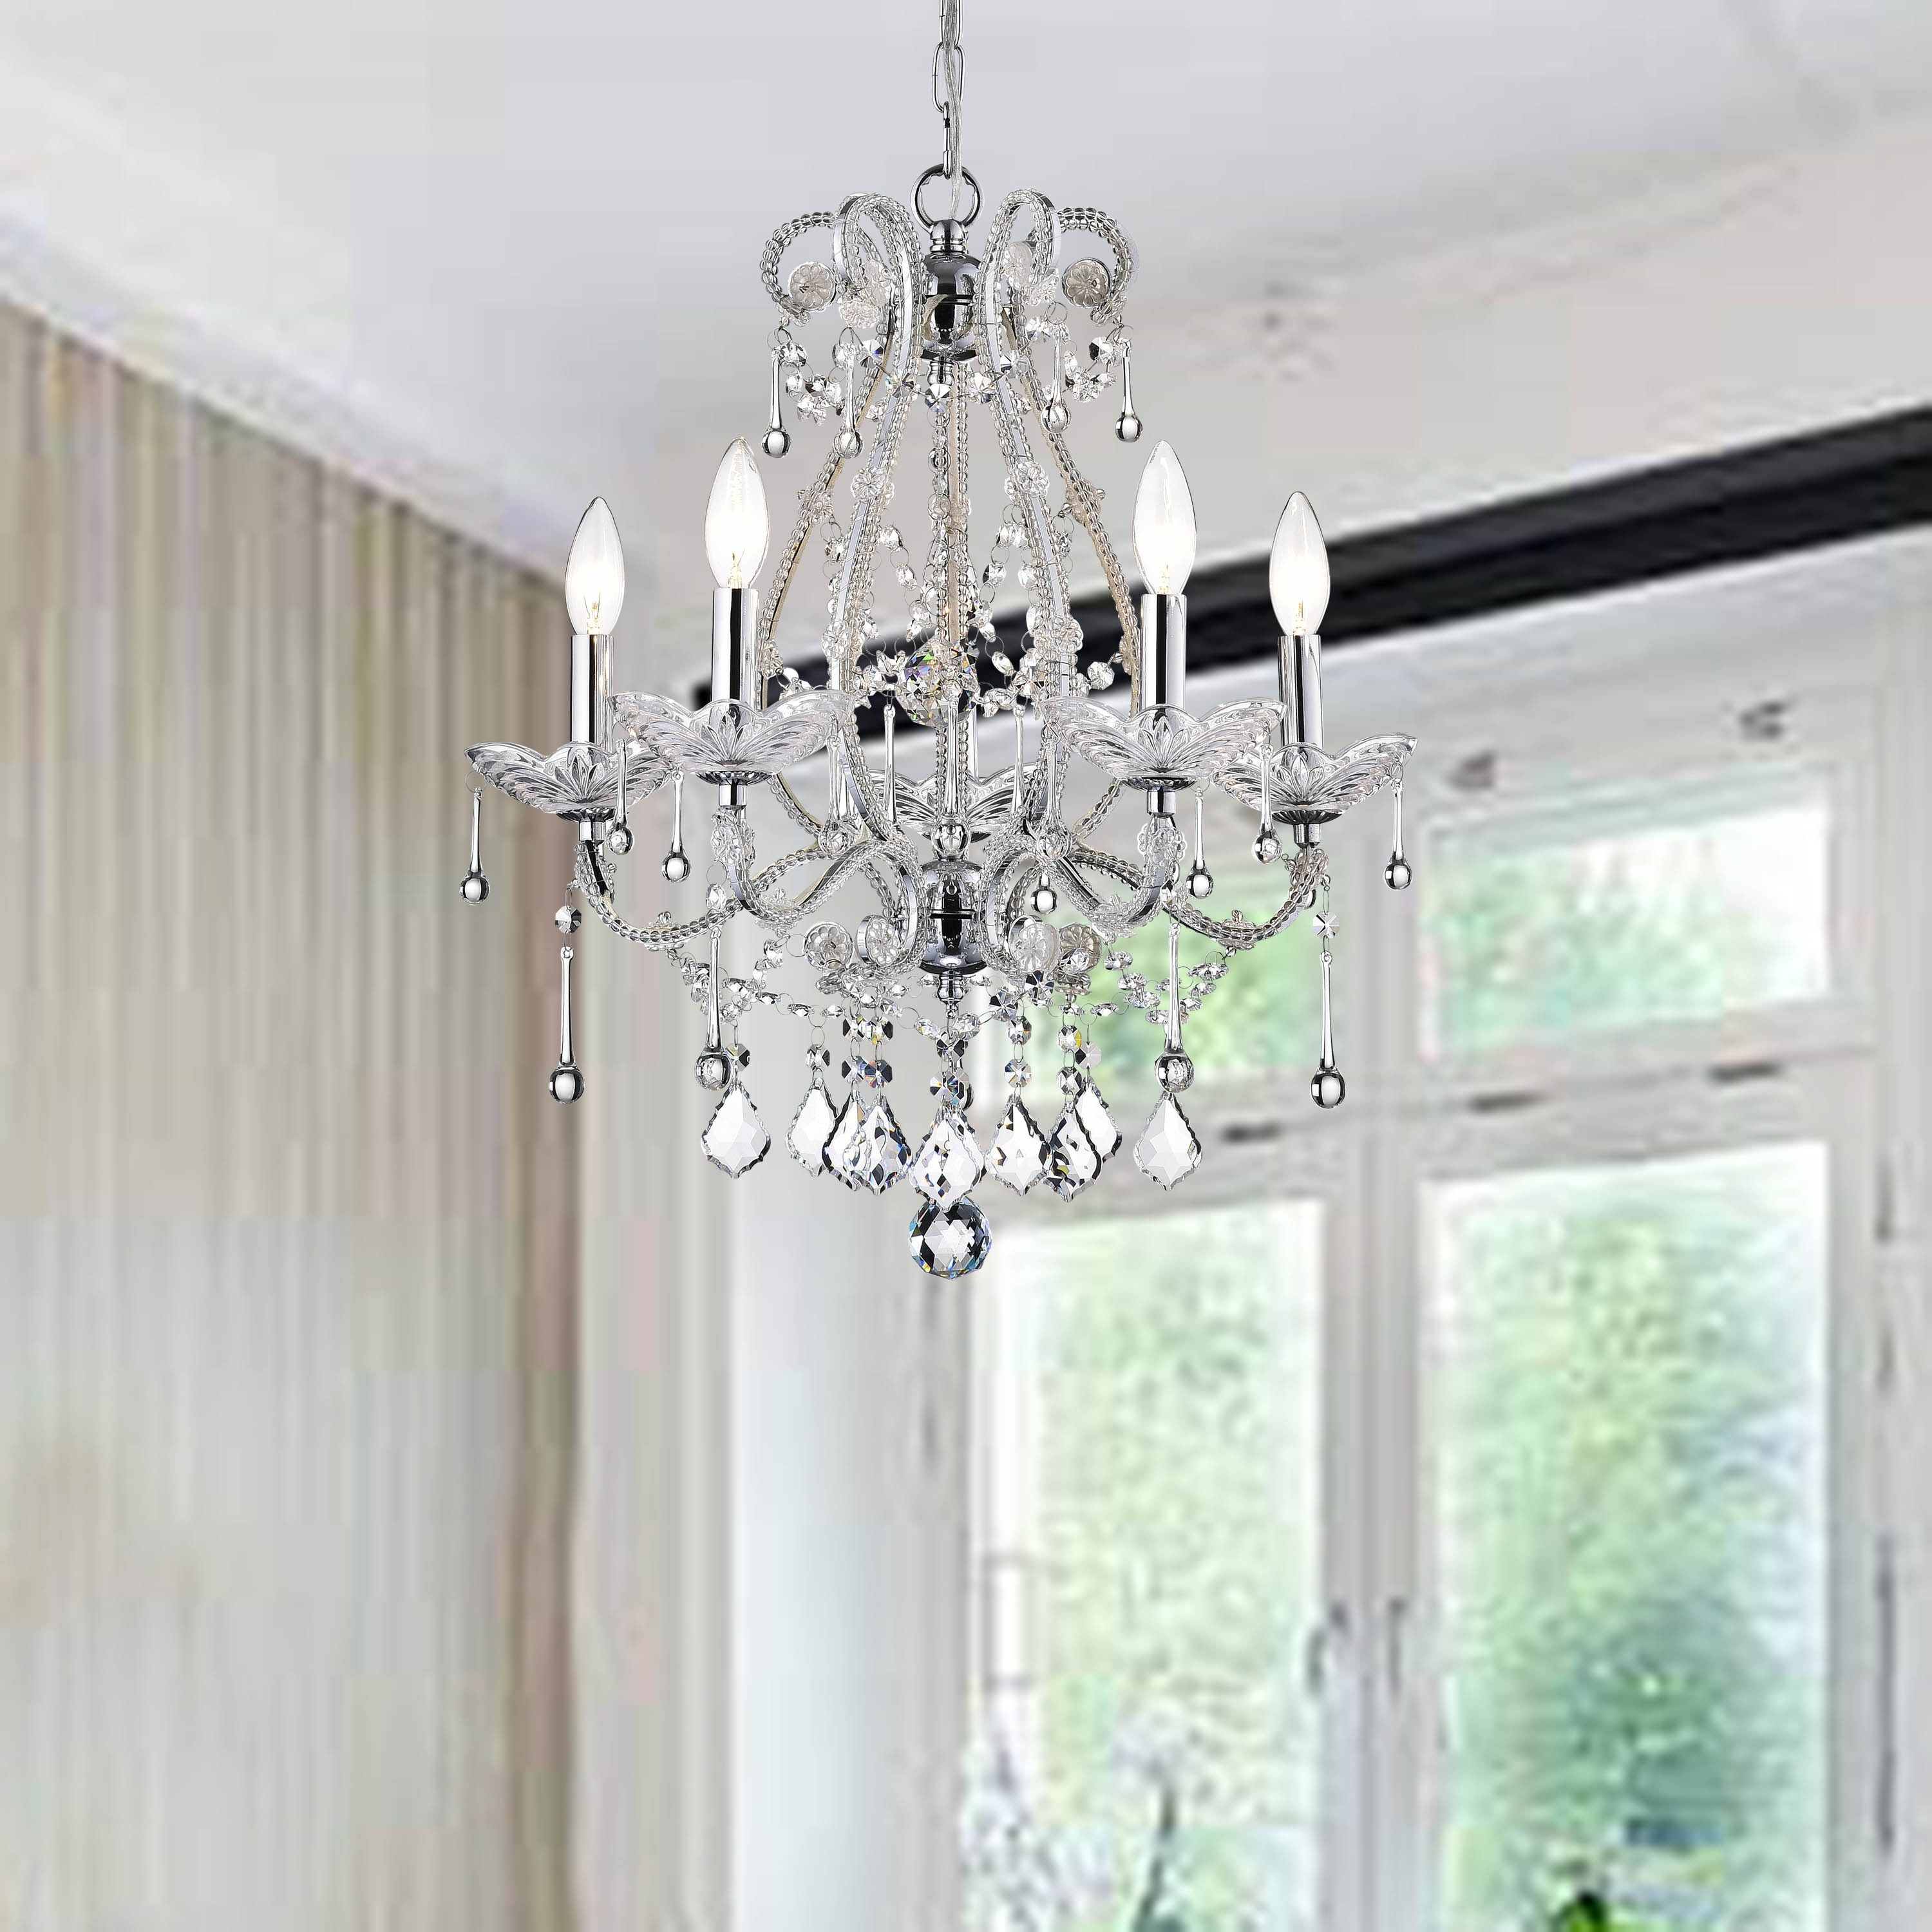 Crystal and iron five light chandelier free shipping today crystal and iron five light chandelier free shipping today overstock 11387588 arubaitofo Images